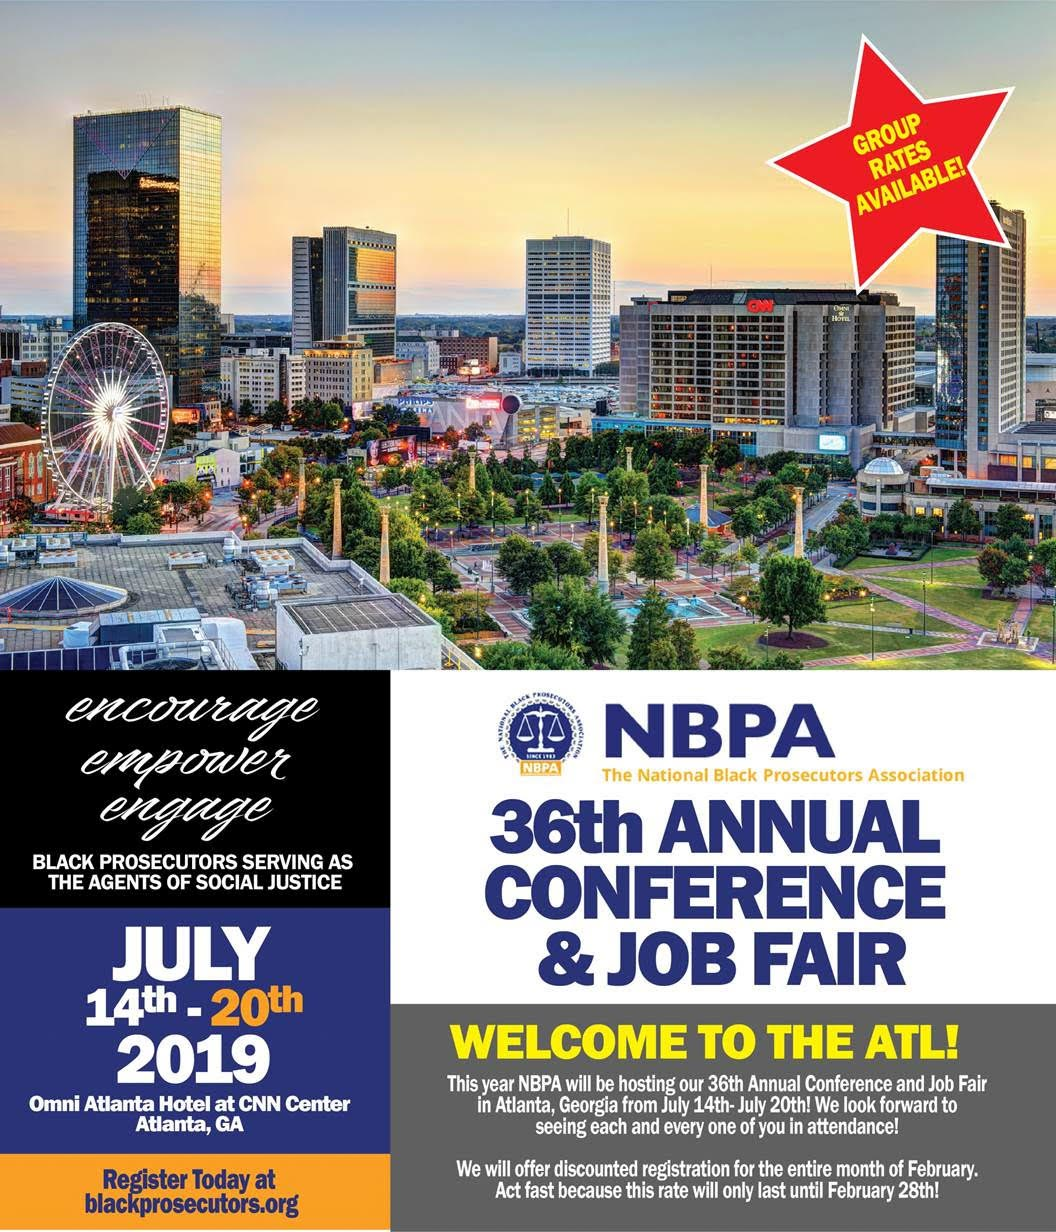 Annual Conference - The National Black Prosecutors Association